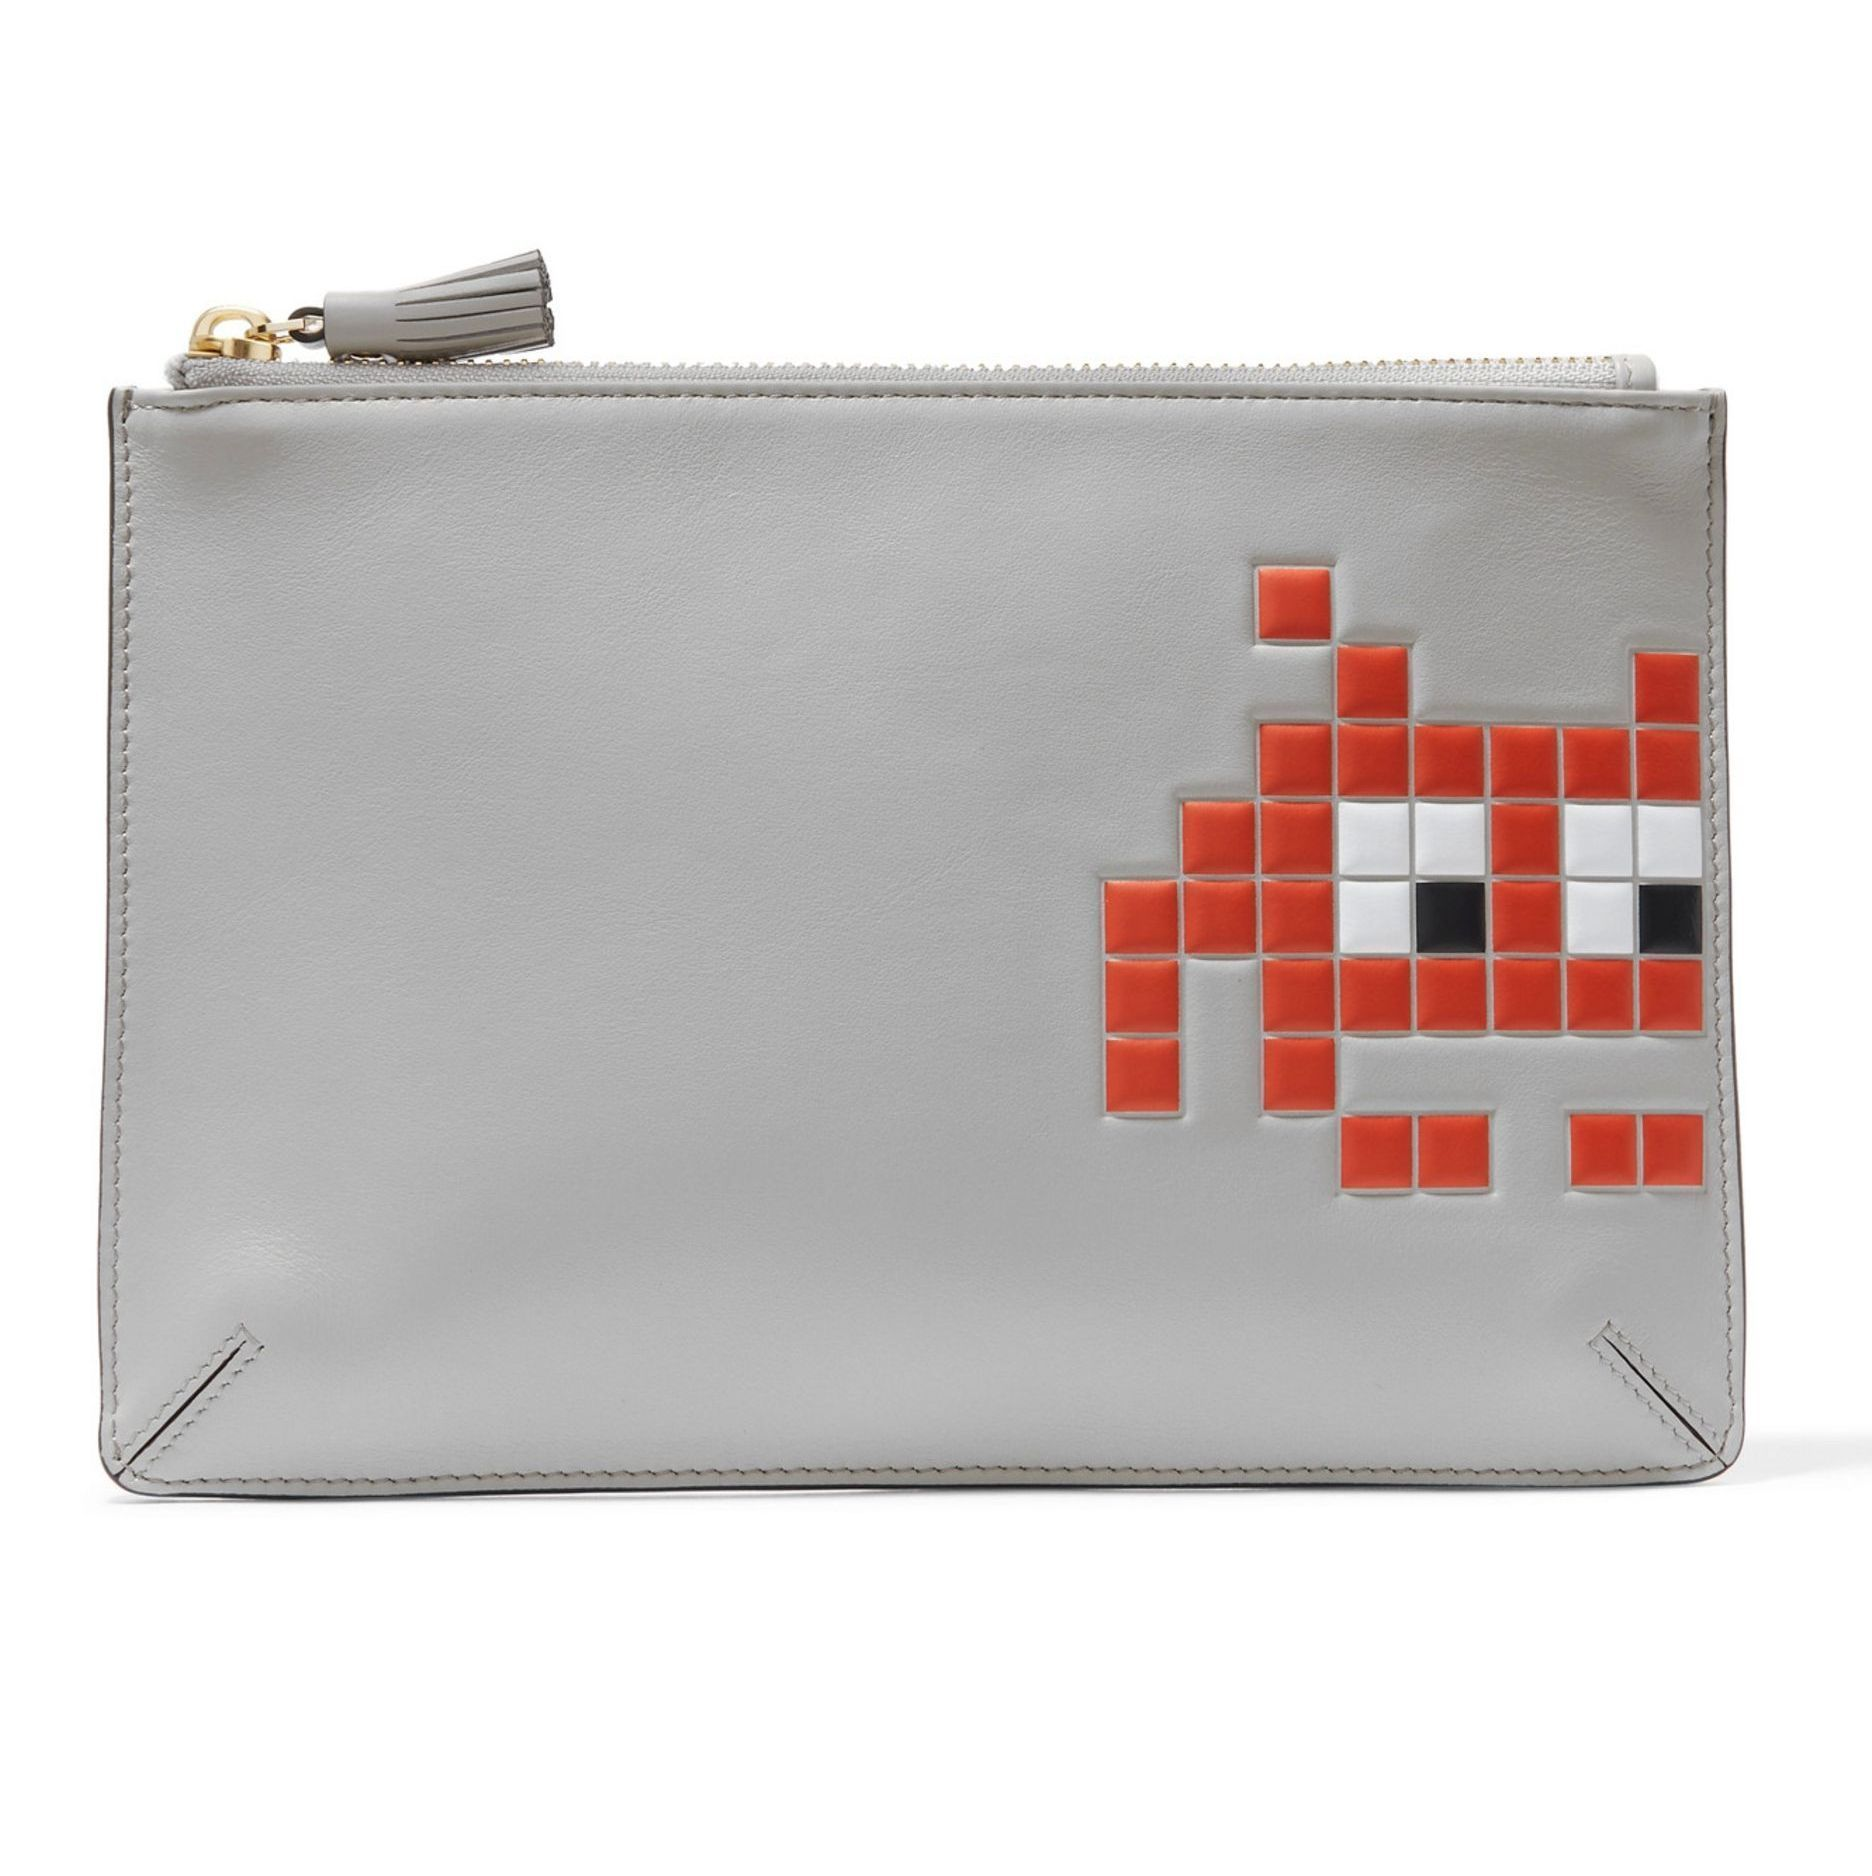 関税込・送料込☆Anya Hindmarch Space Invader Loose Pocket XL